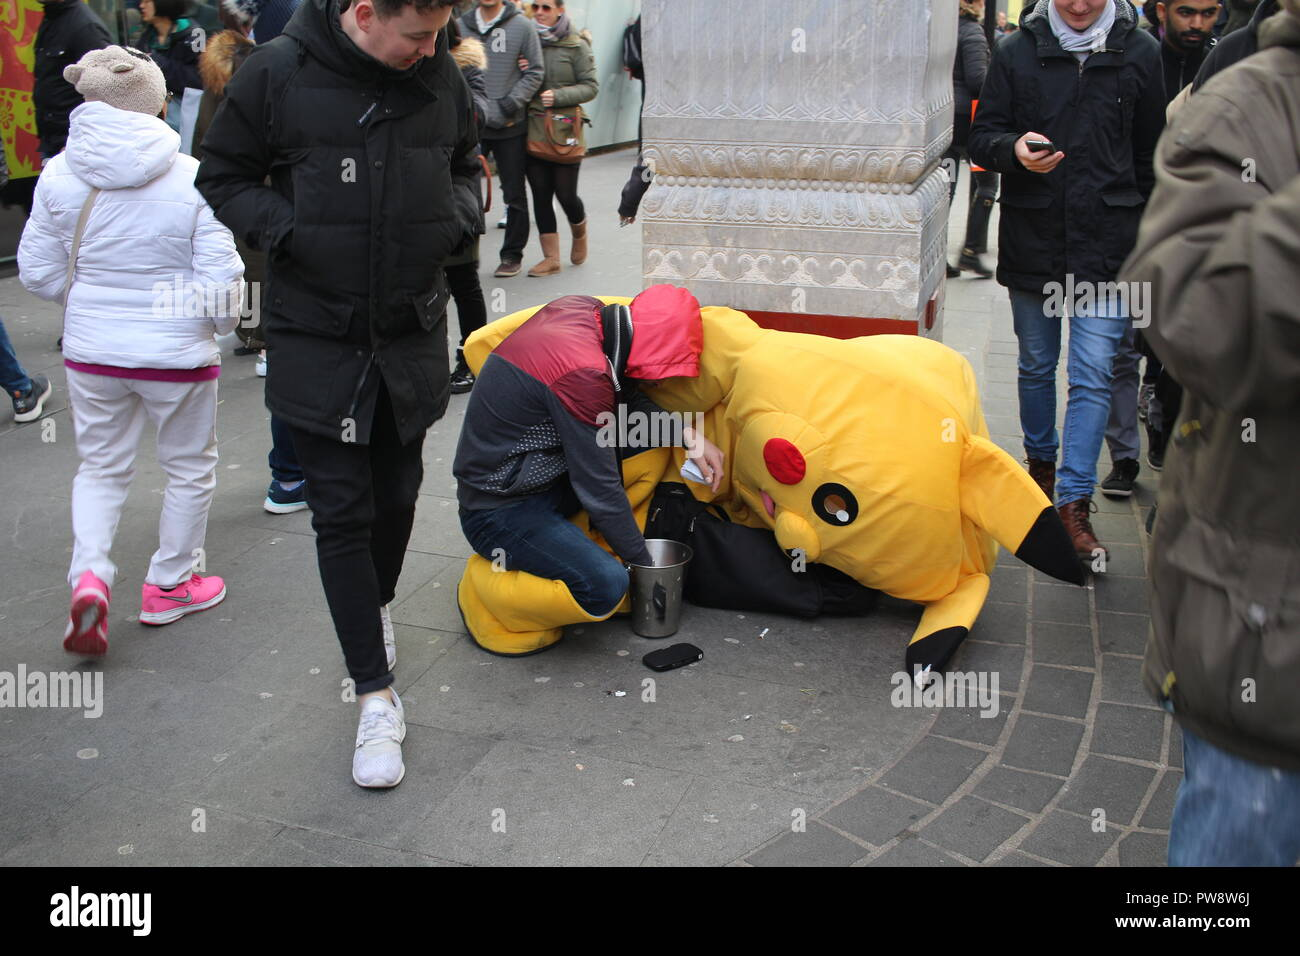 LONDON, UK - February 16, 2018: Exhausted street artist next to his fancy dress counting hard earned money, people walking and looking to him. Stock Photo